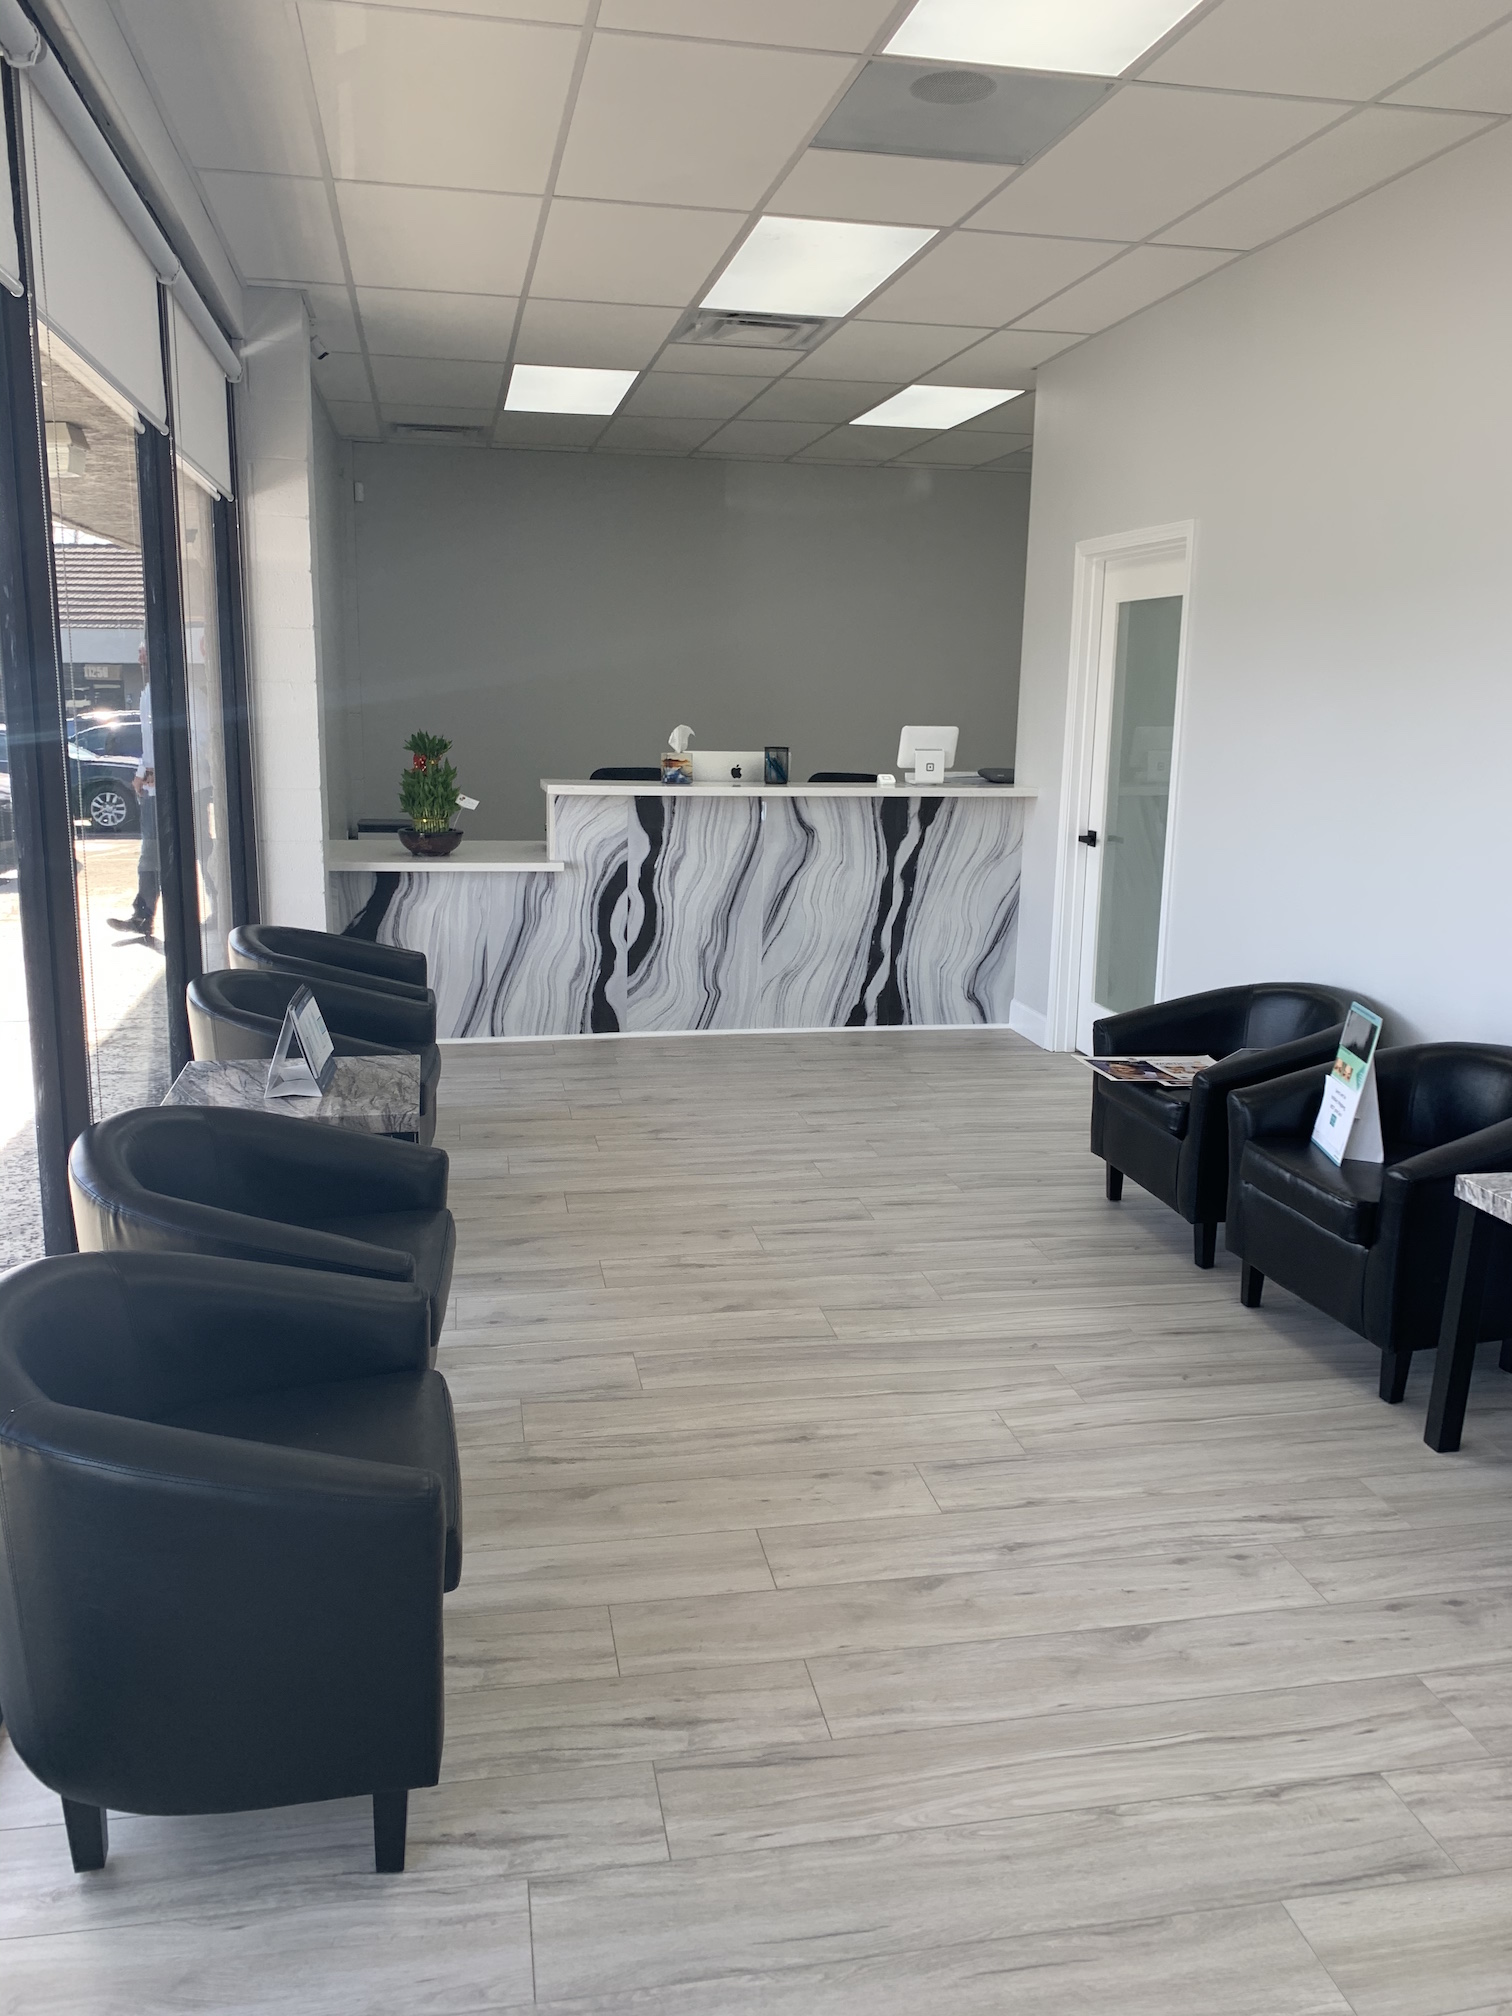 whittier-southbaymedspa